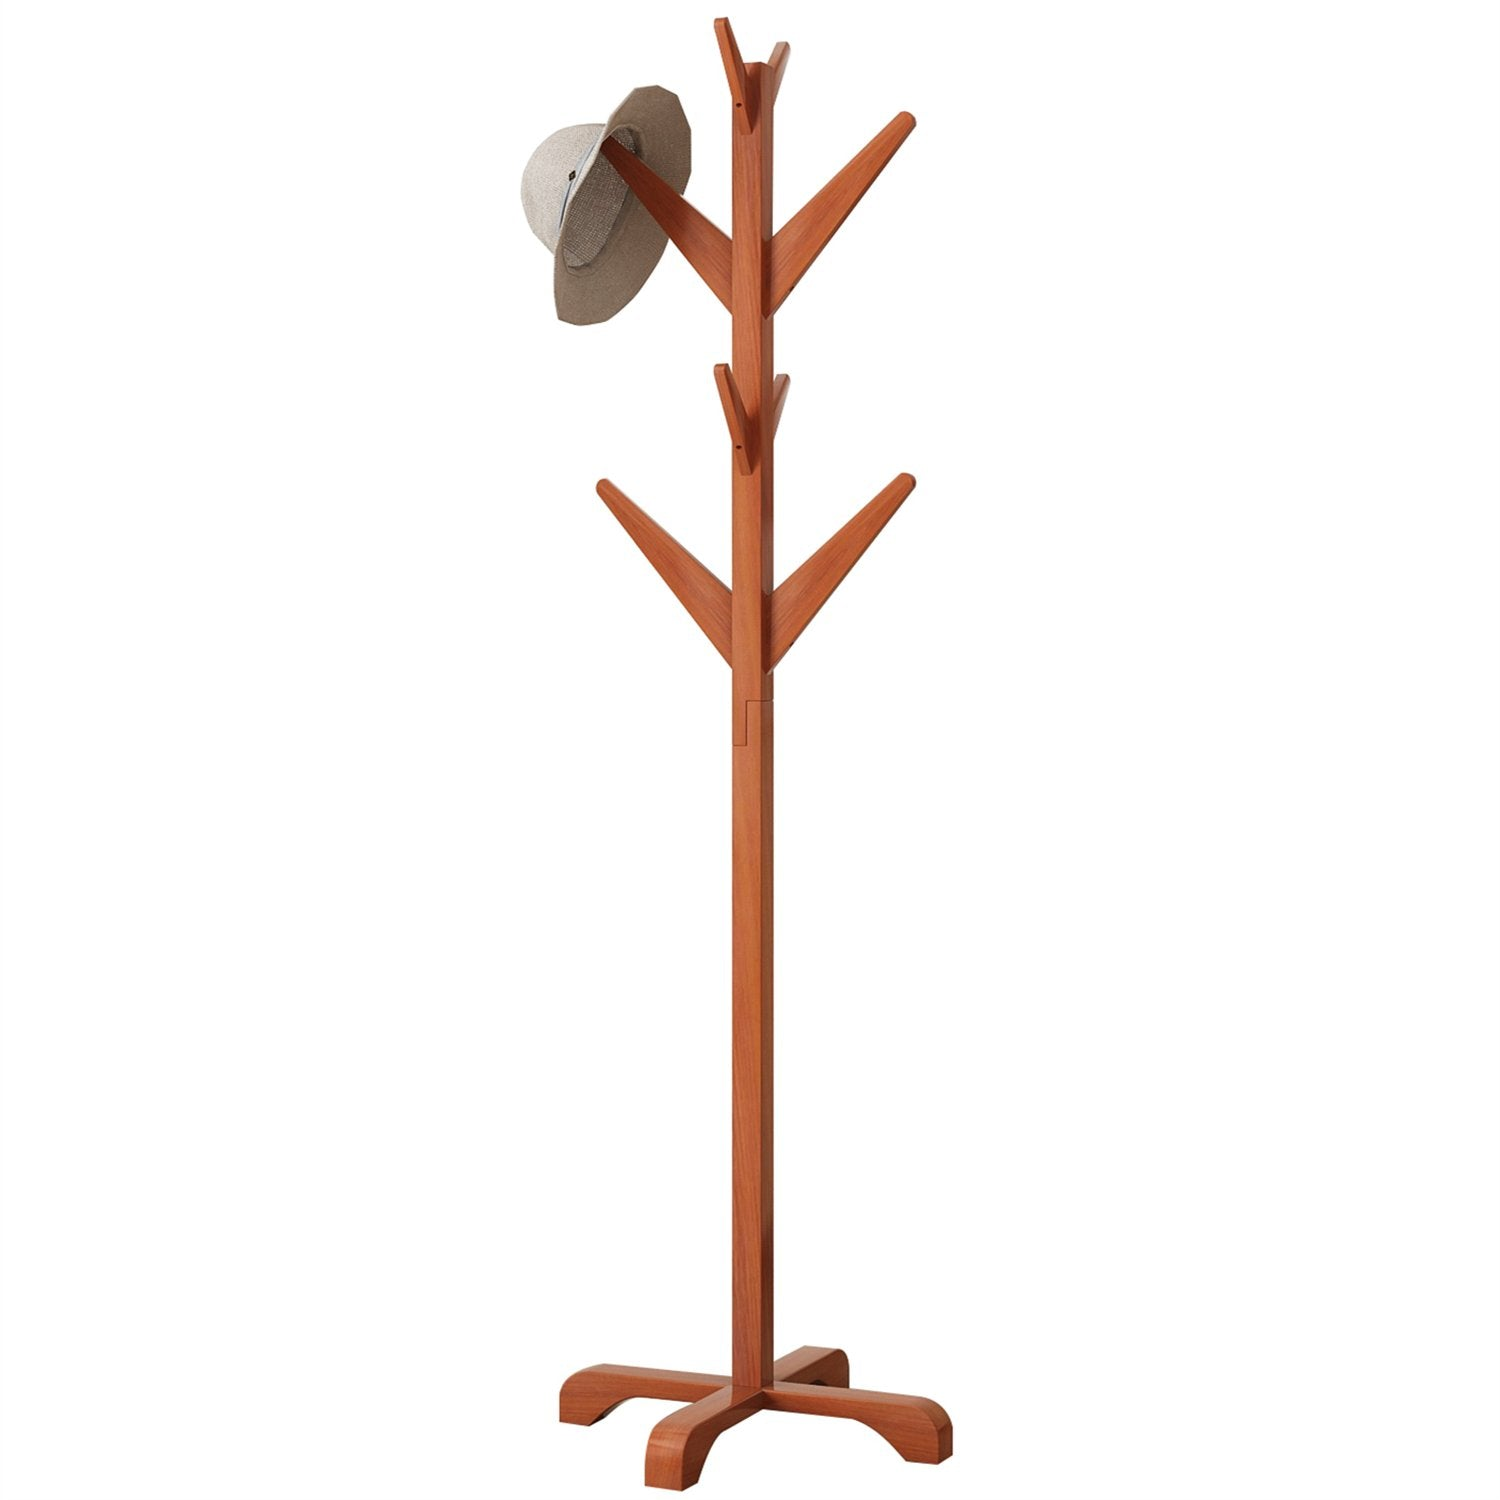 DlandHome Solid Wood Coat Rack, Entryway Free Standing Hat Jacket Coat Hanger Clothing Rack, Corner Hall Umbrella Tree, YJ001-HC Honey Color, 1 Pack